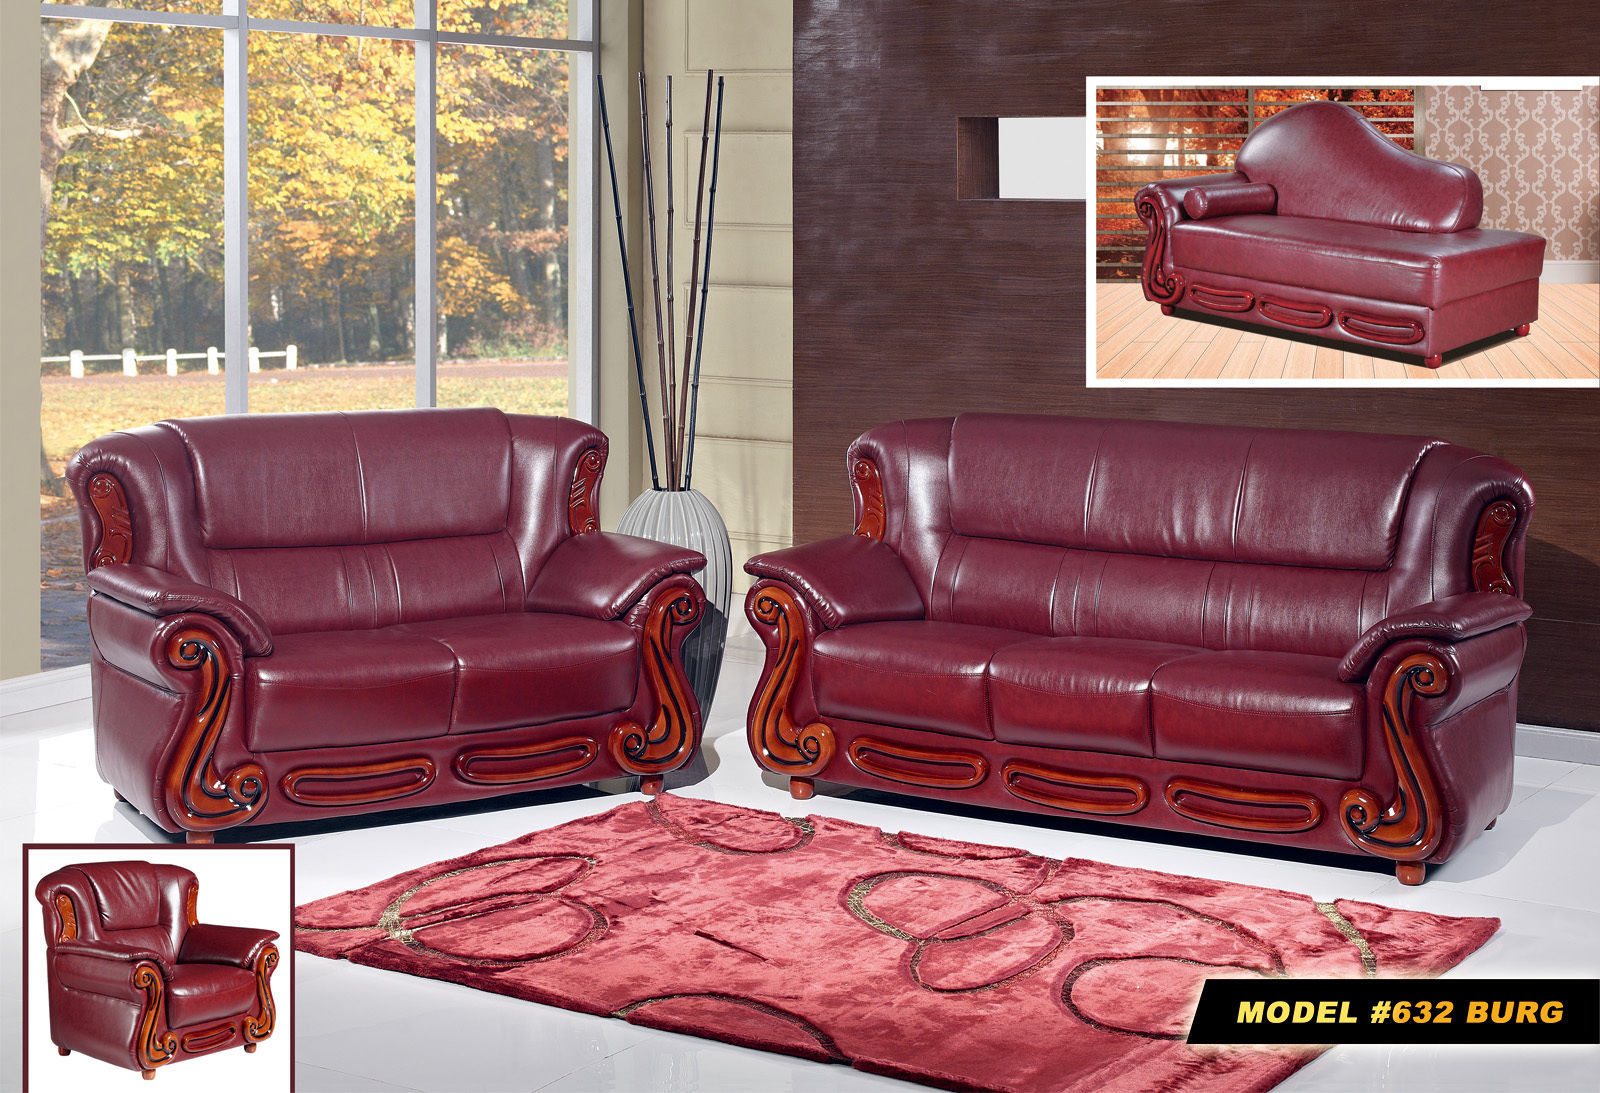 Meridian 632 Bonded Leather Living Room Sofa Burgundy Traditional Style